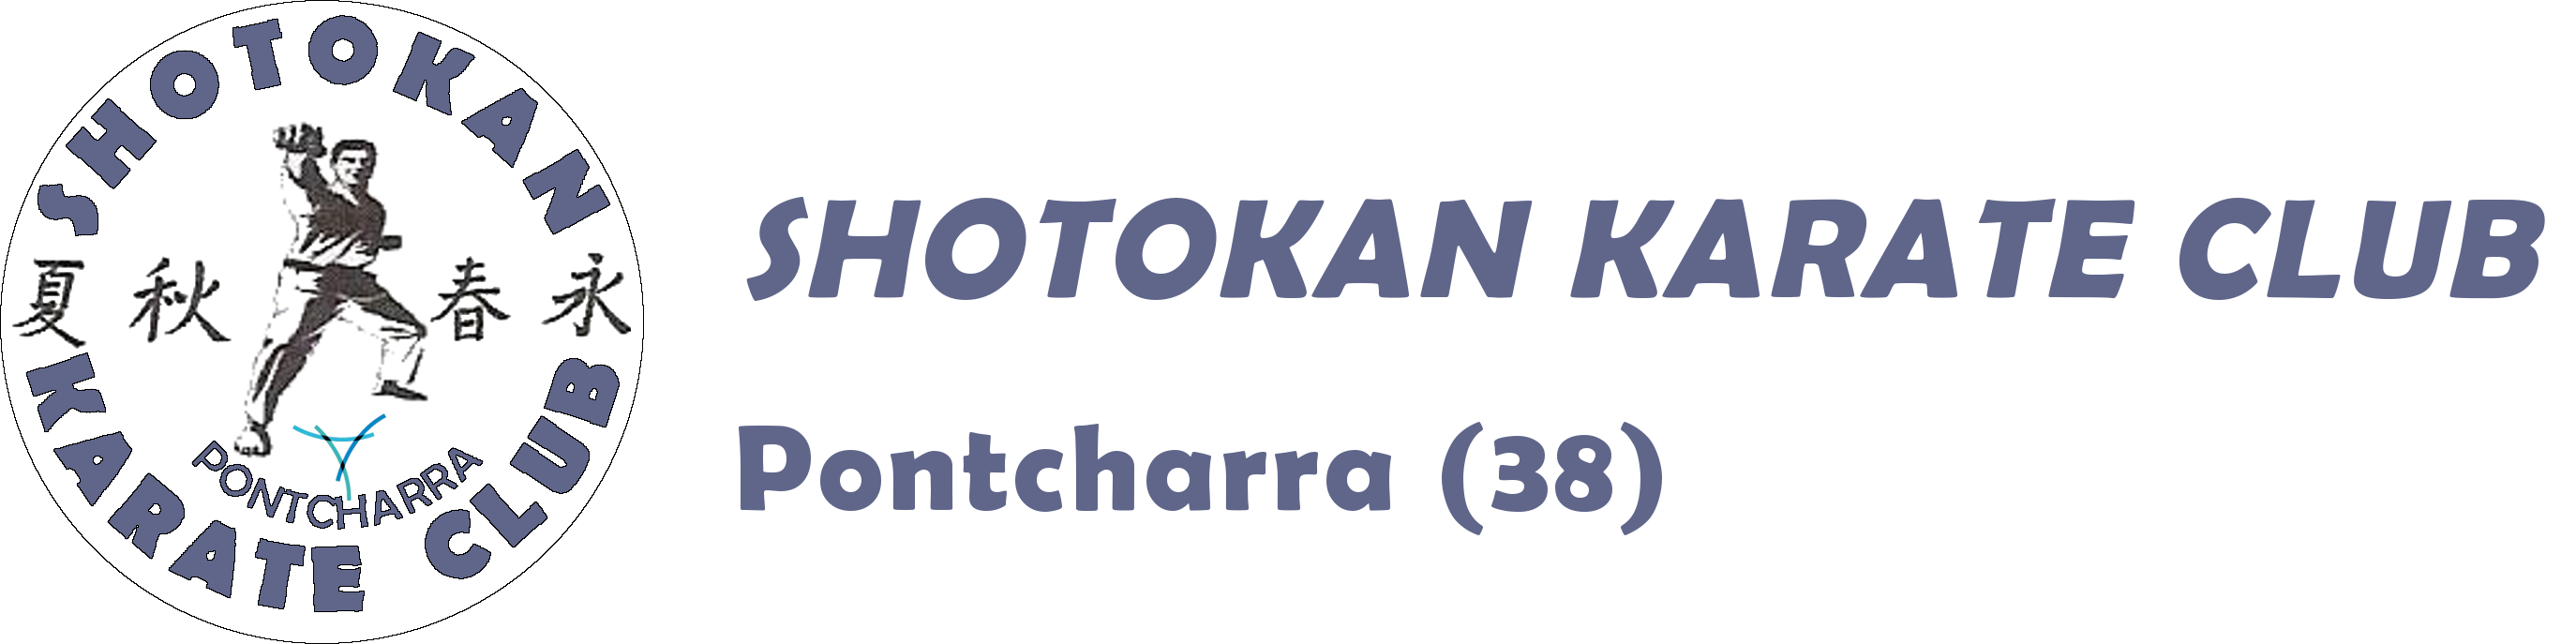 Shotokan Karaté Club